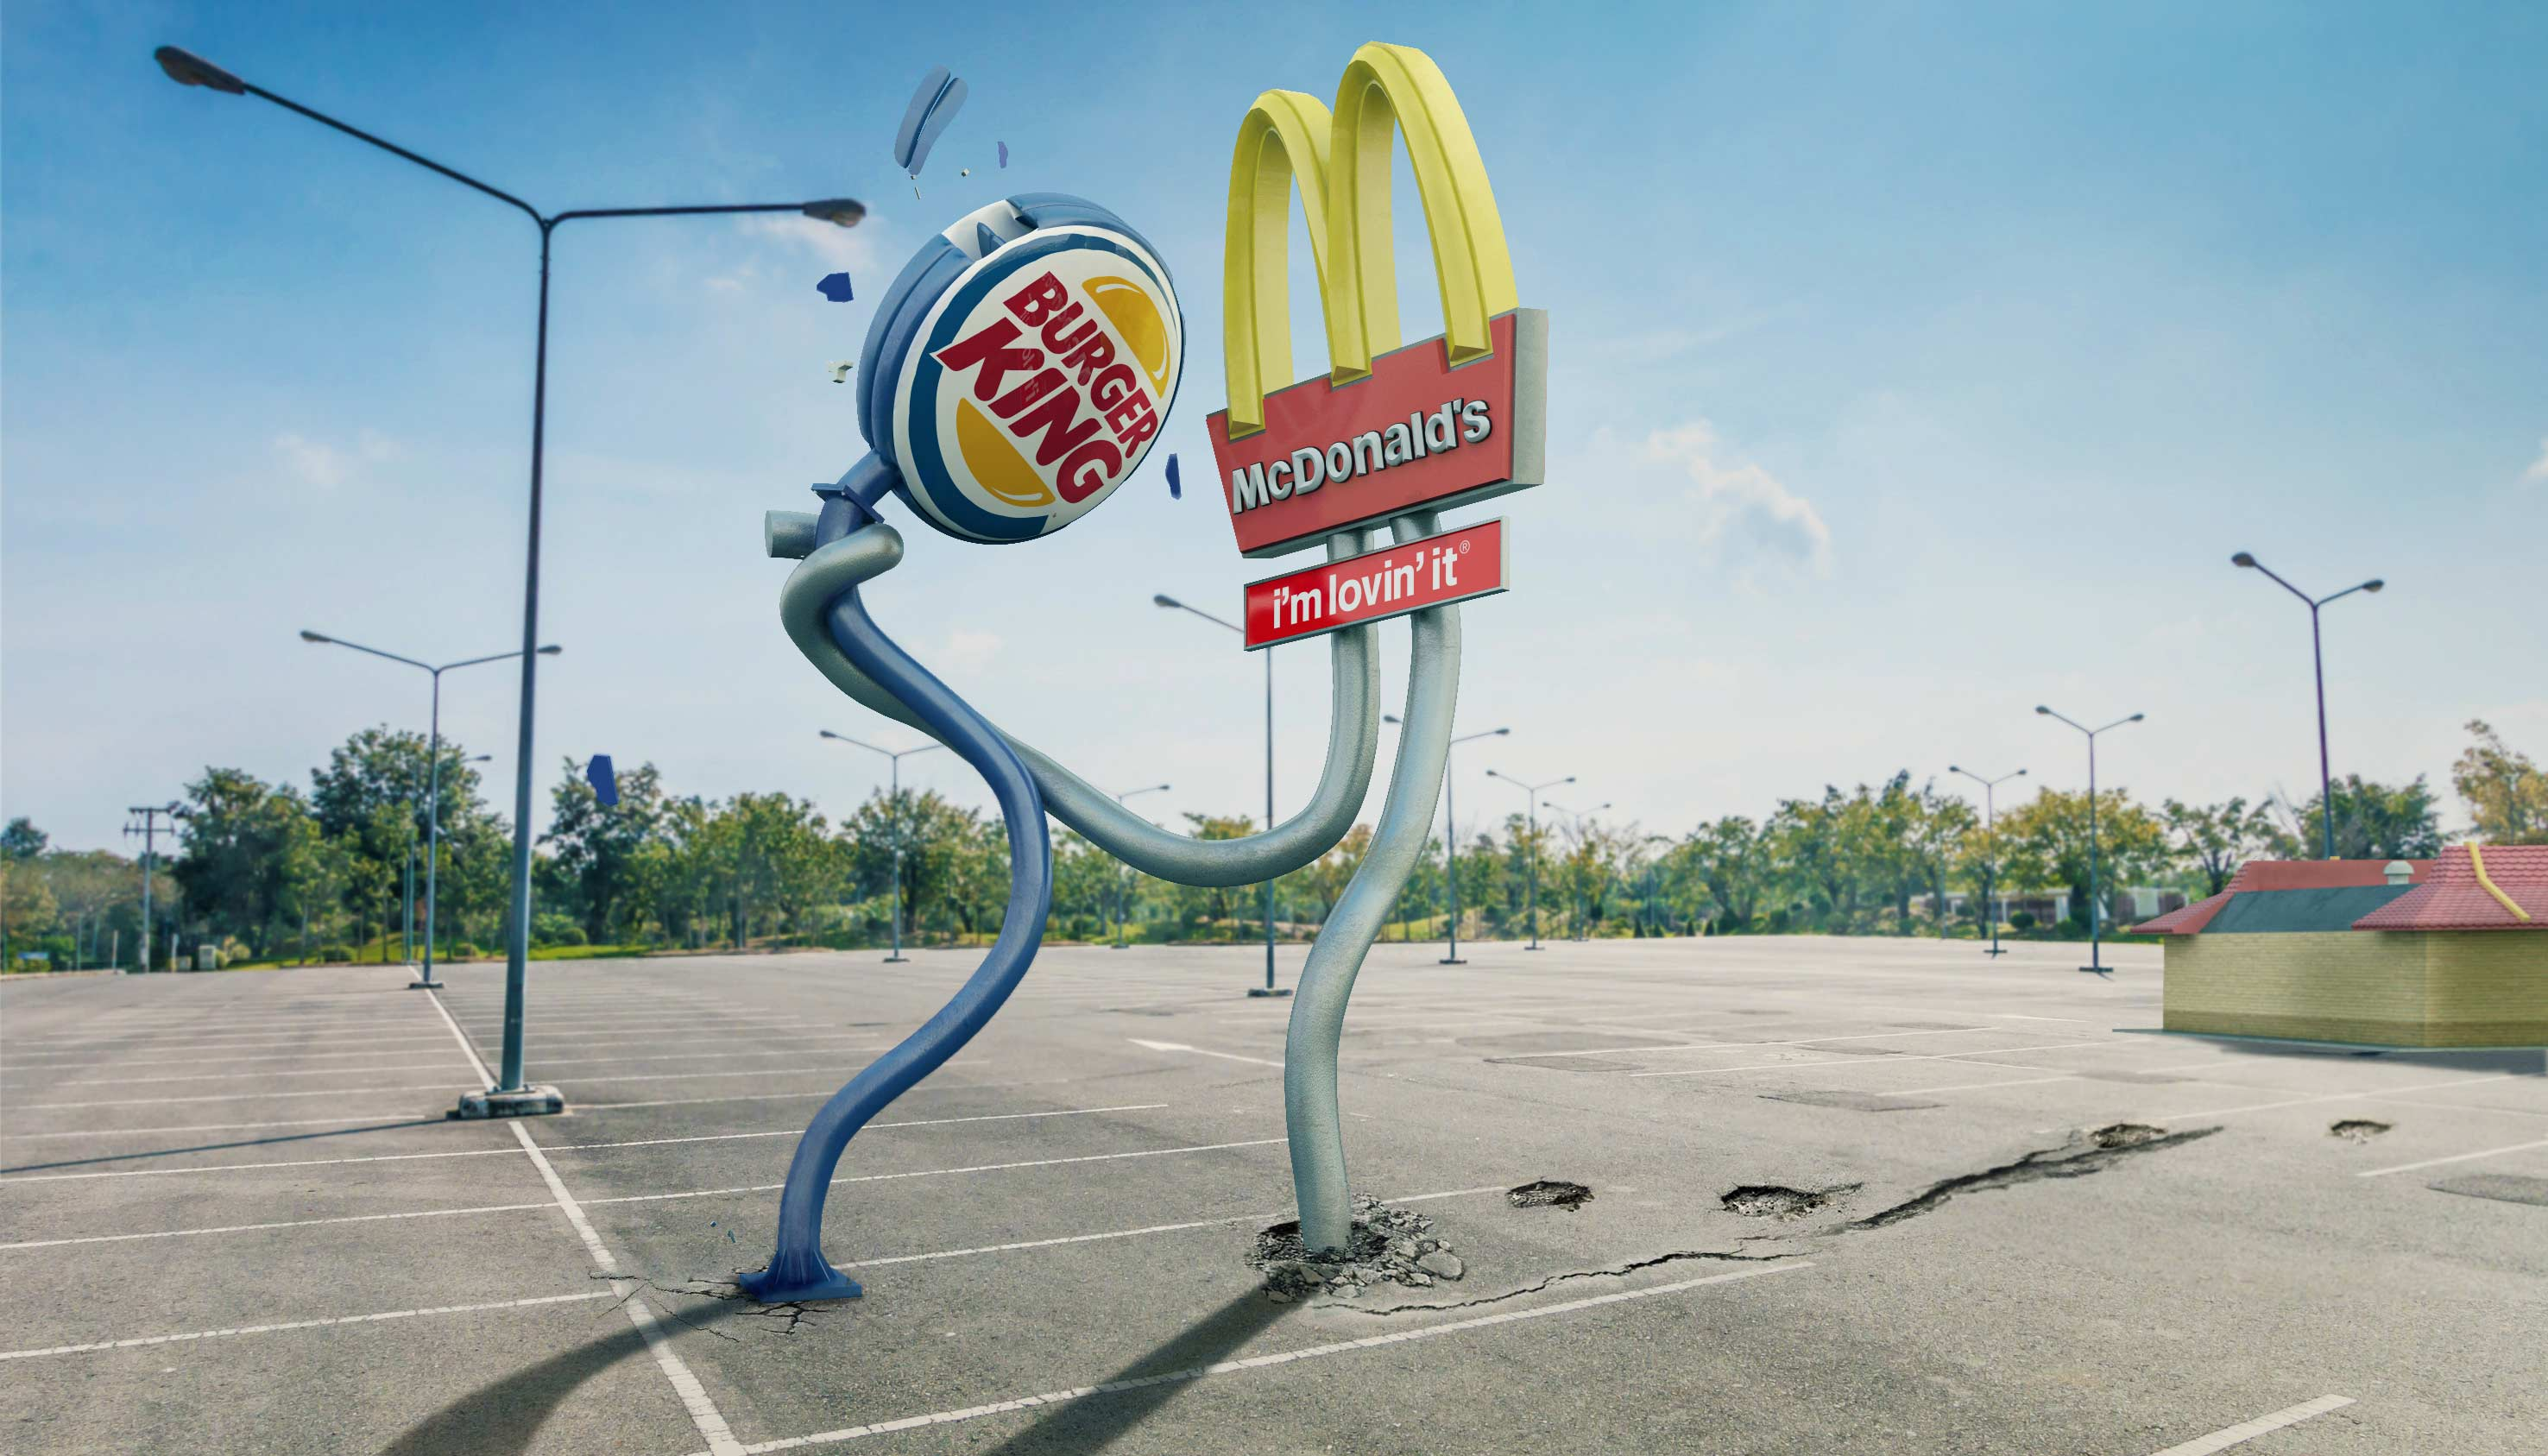 ADVERTISING CESS 3D 3DTYPE LETTERING CGI MCDONALDS BURGERKING VERSUS 3DILLUSTRATION PHOTOMANIPULATION